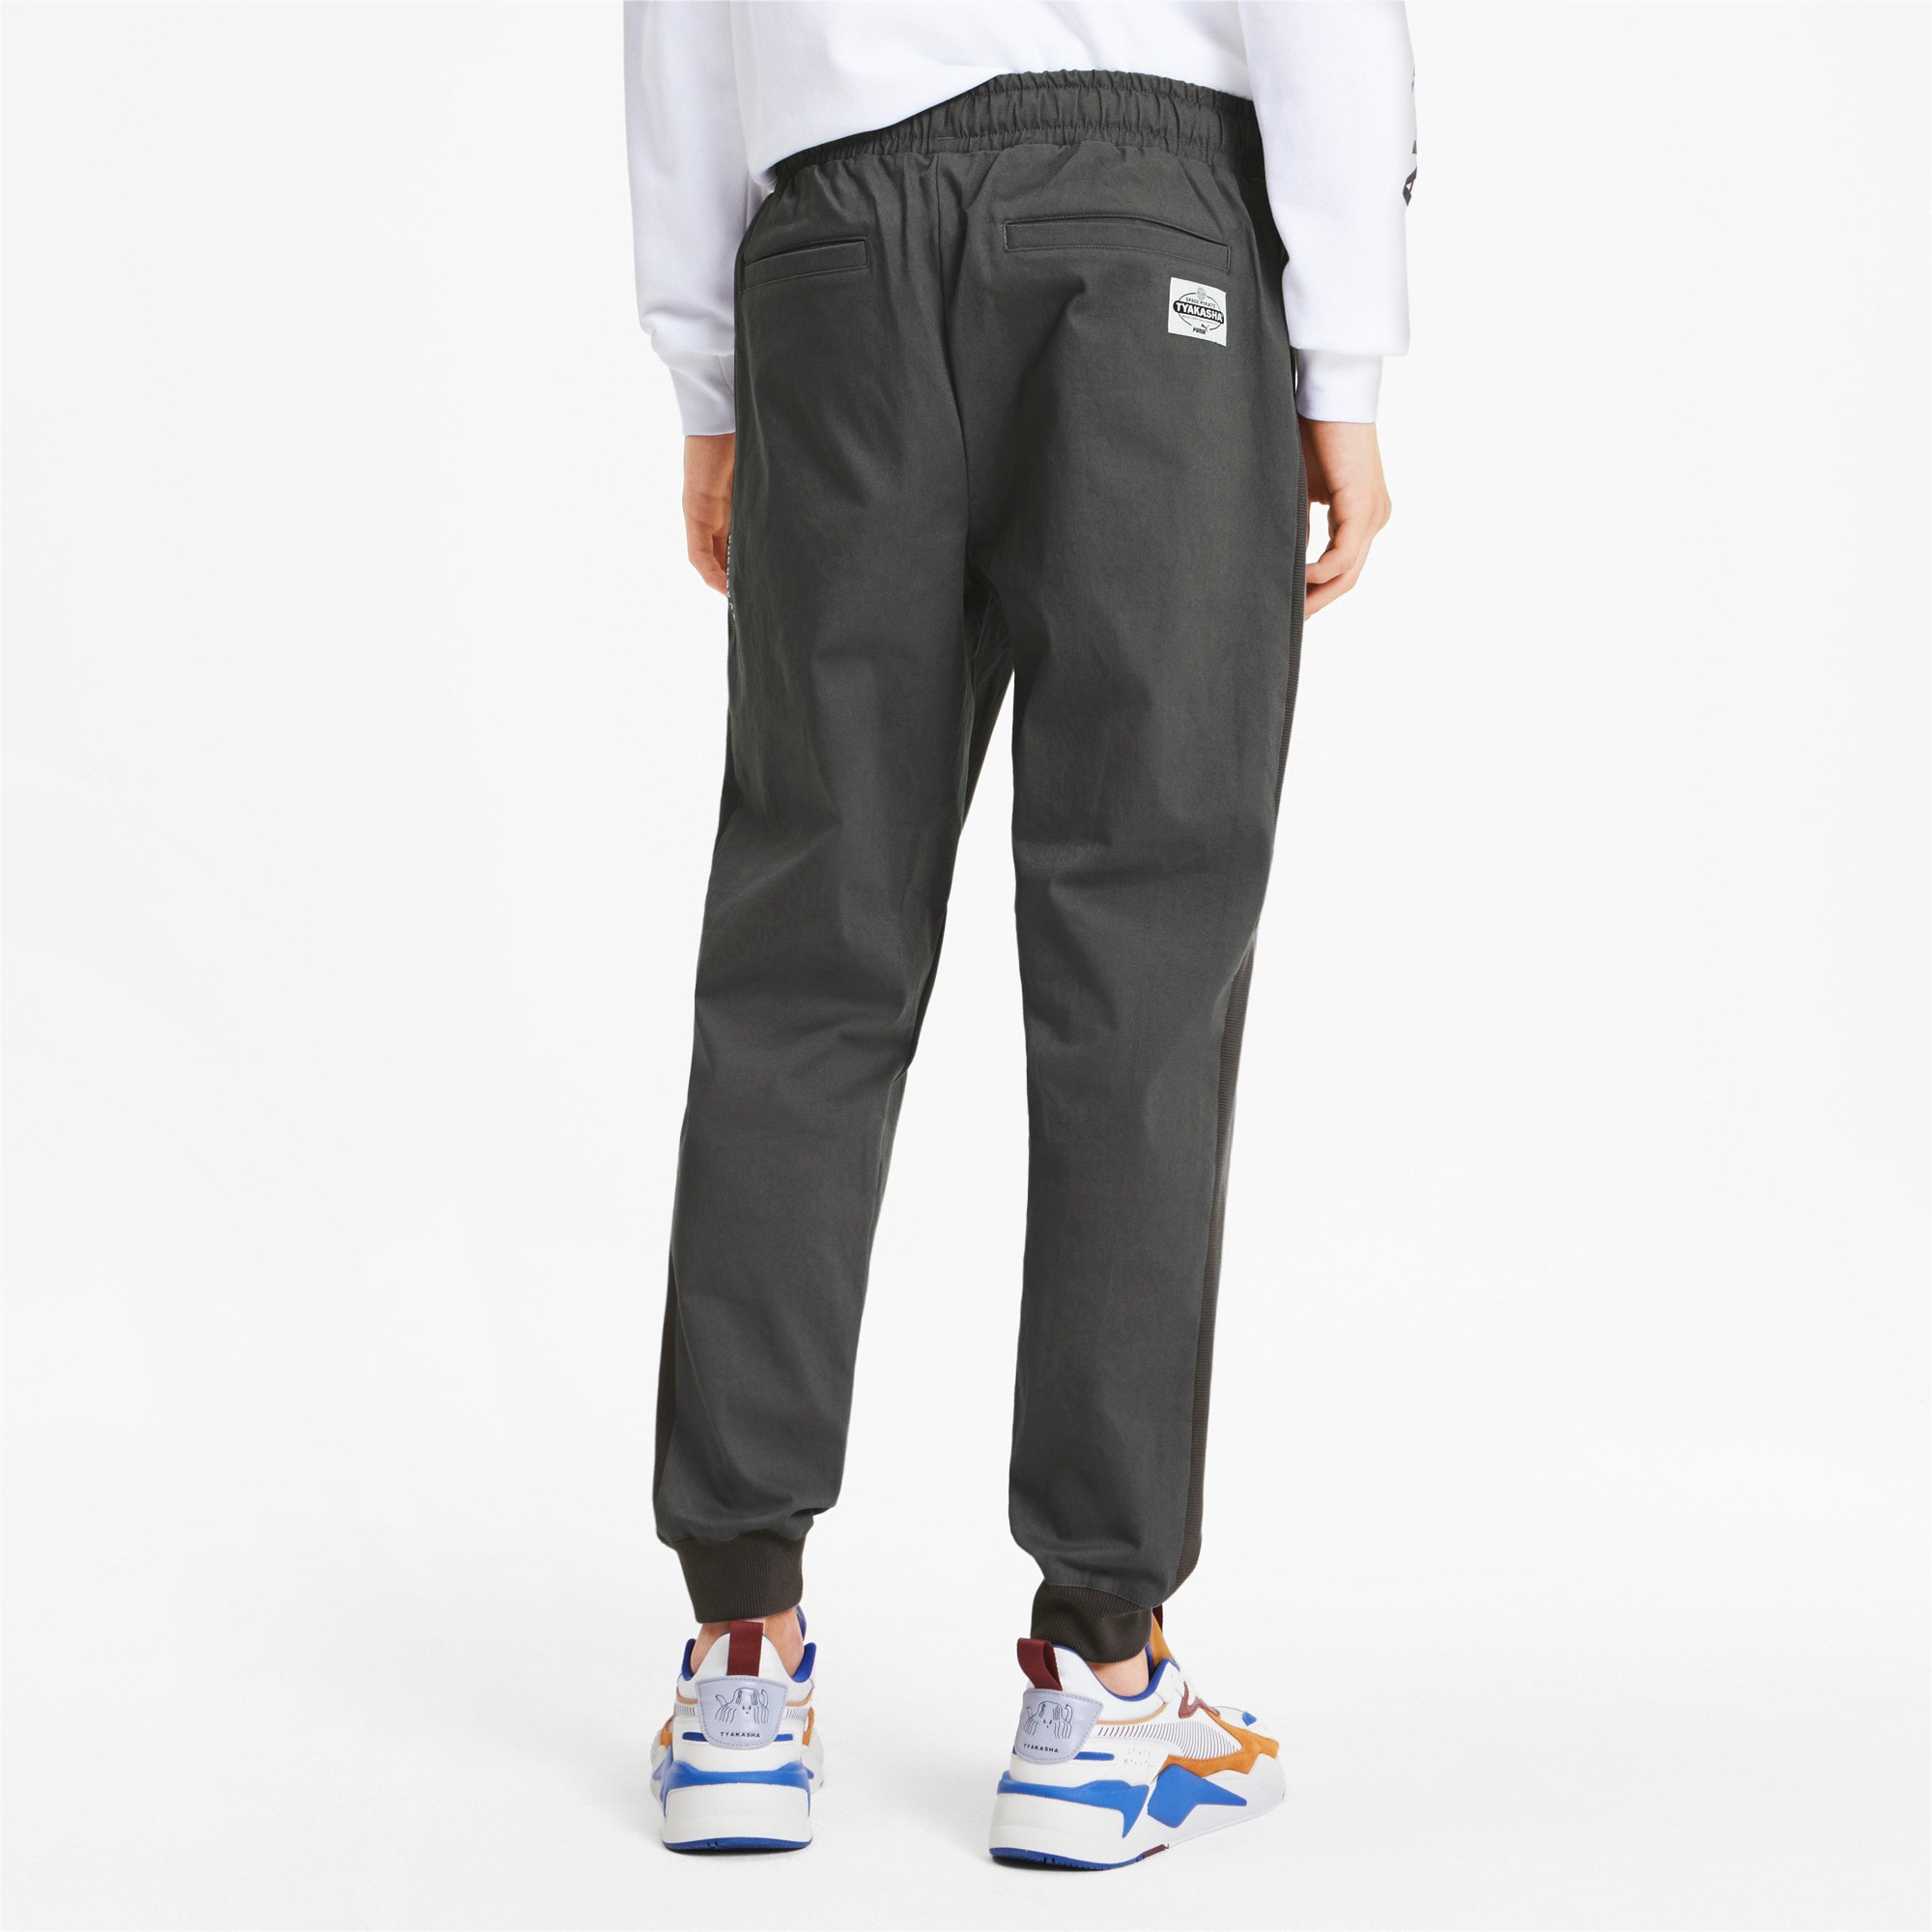 Thumbnail 3 of PUMA x TYAKASHA Woven Men's Pants, CASTLEROCK, medium